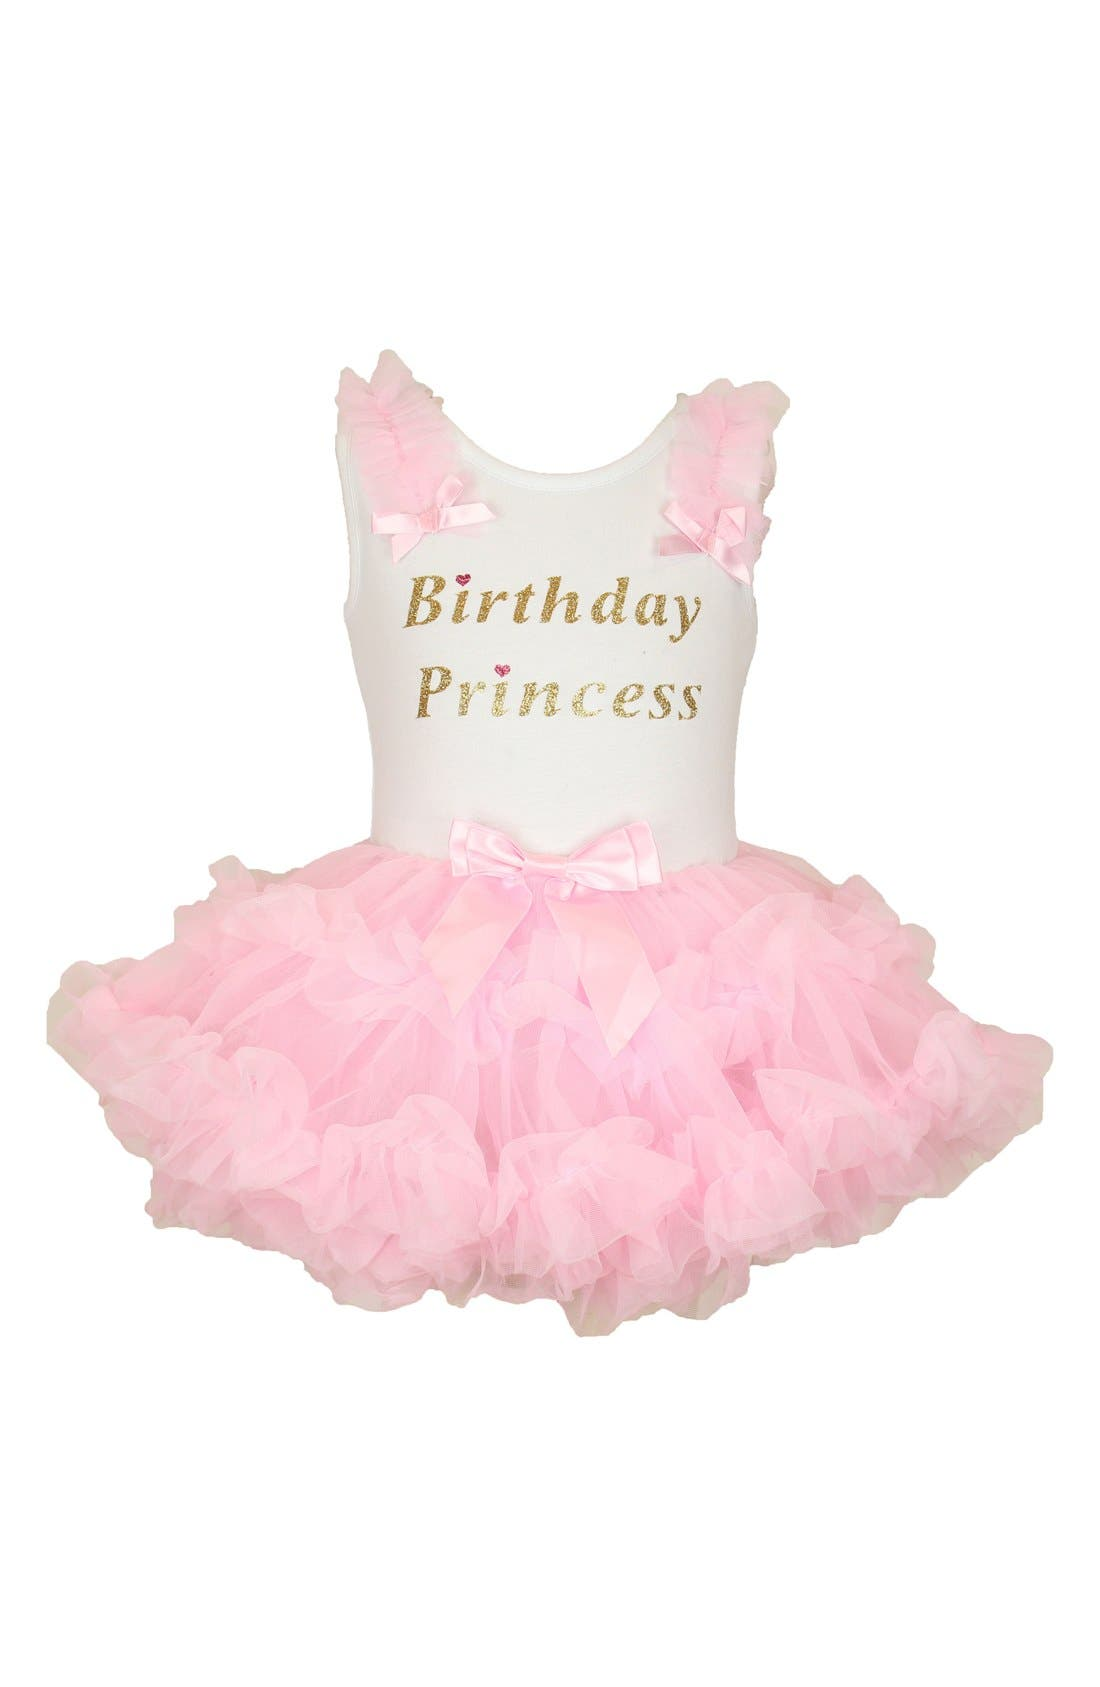 Birthday Princess Tutu Dress,                             Main thumbnail 1, color,                             PINK